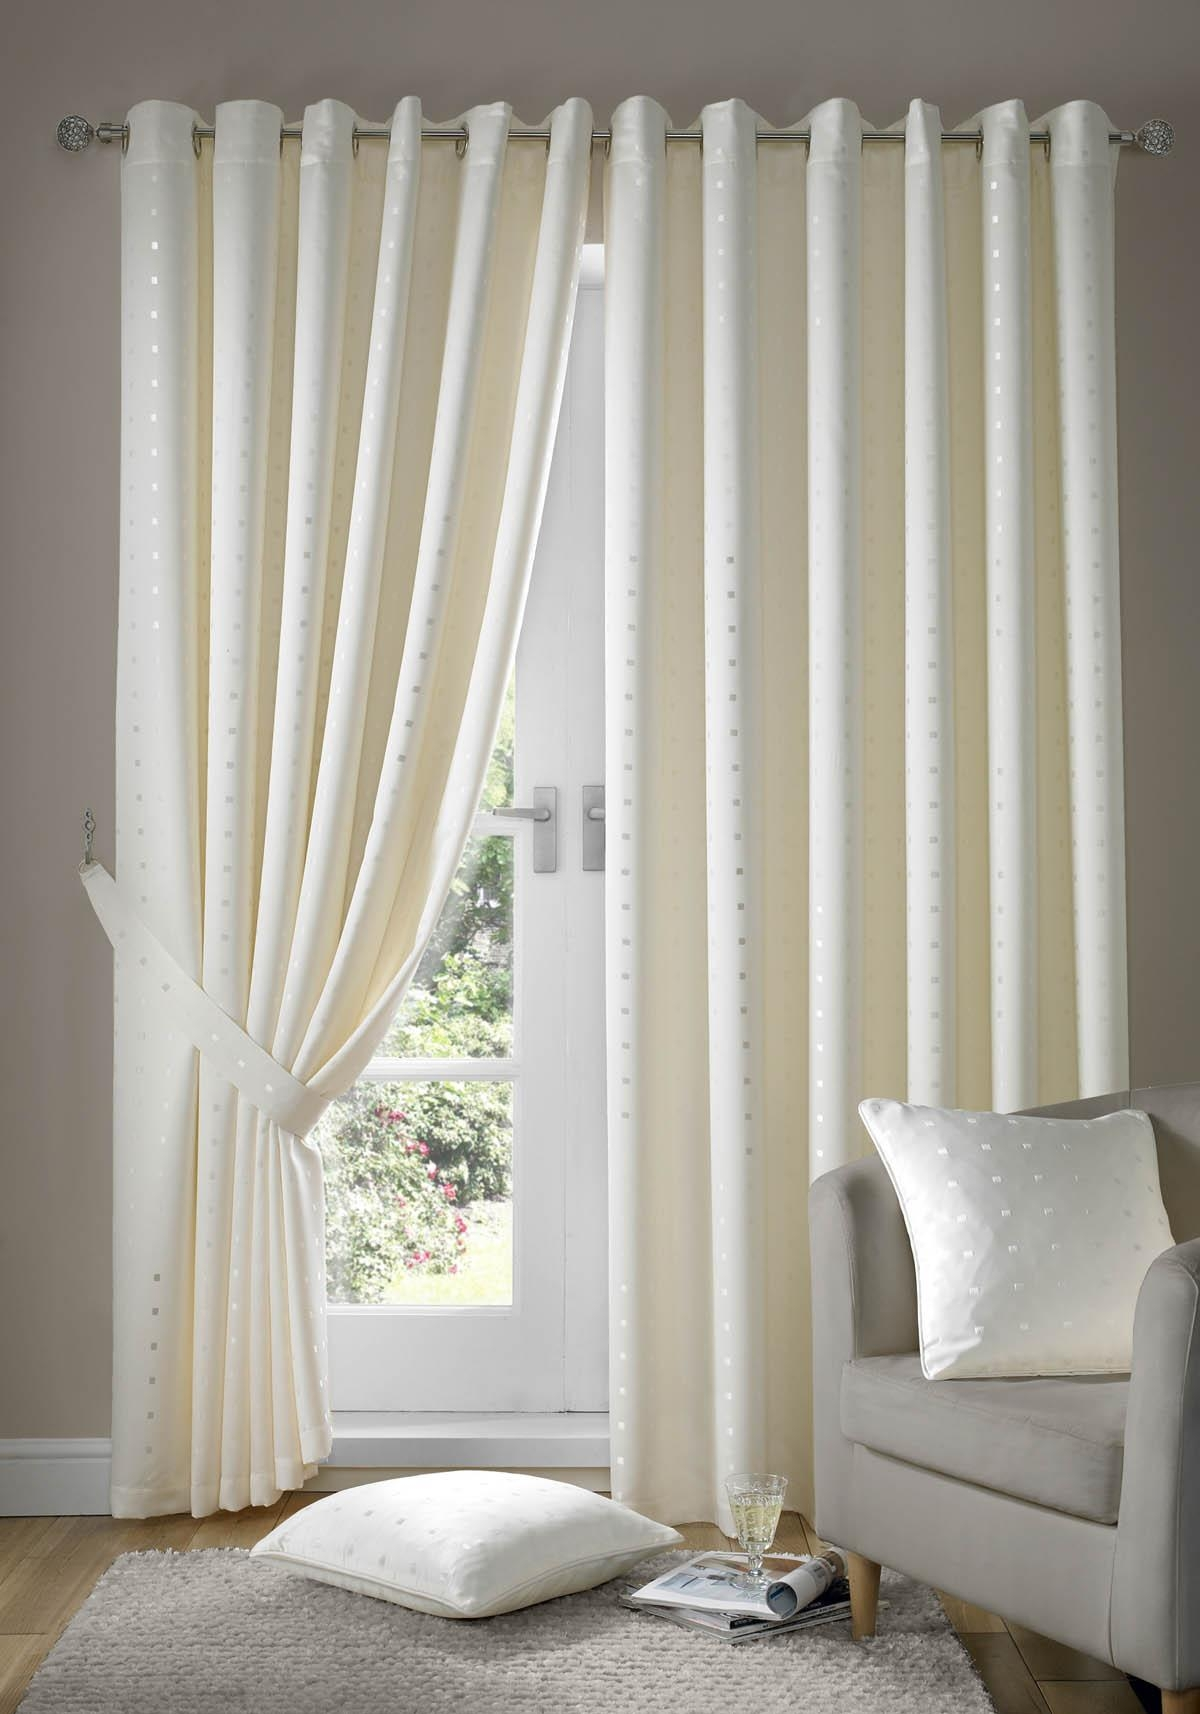 Madison Eyelet Lined Curtains Cream Free Uk Delivery Terrys With Regard To Cream Lined Curtains (Image 10 of 15)